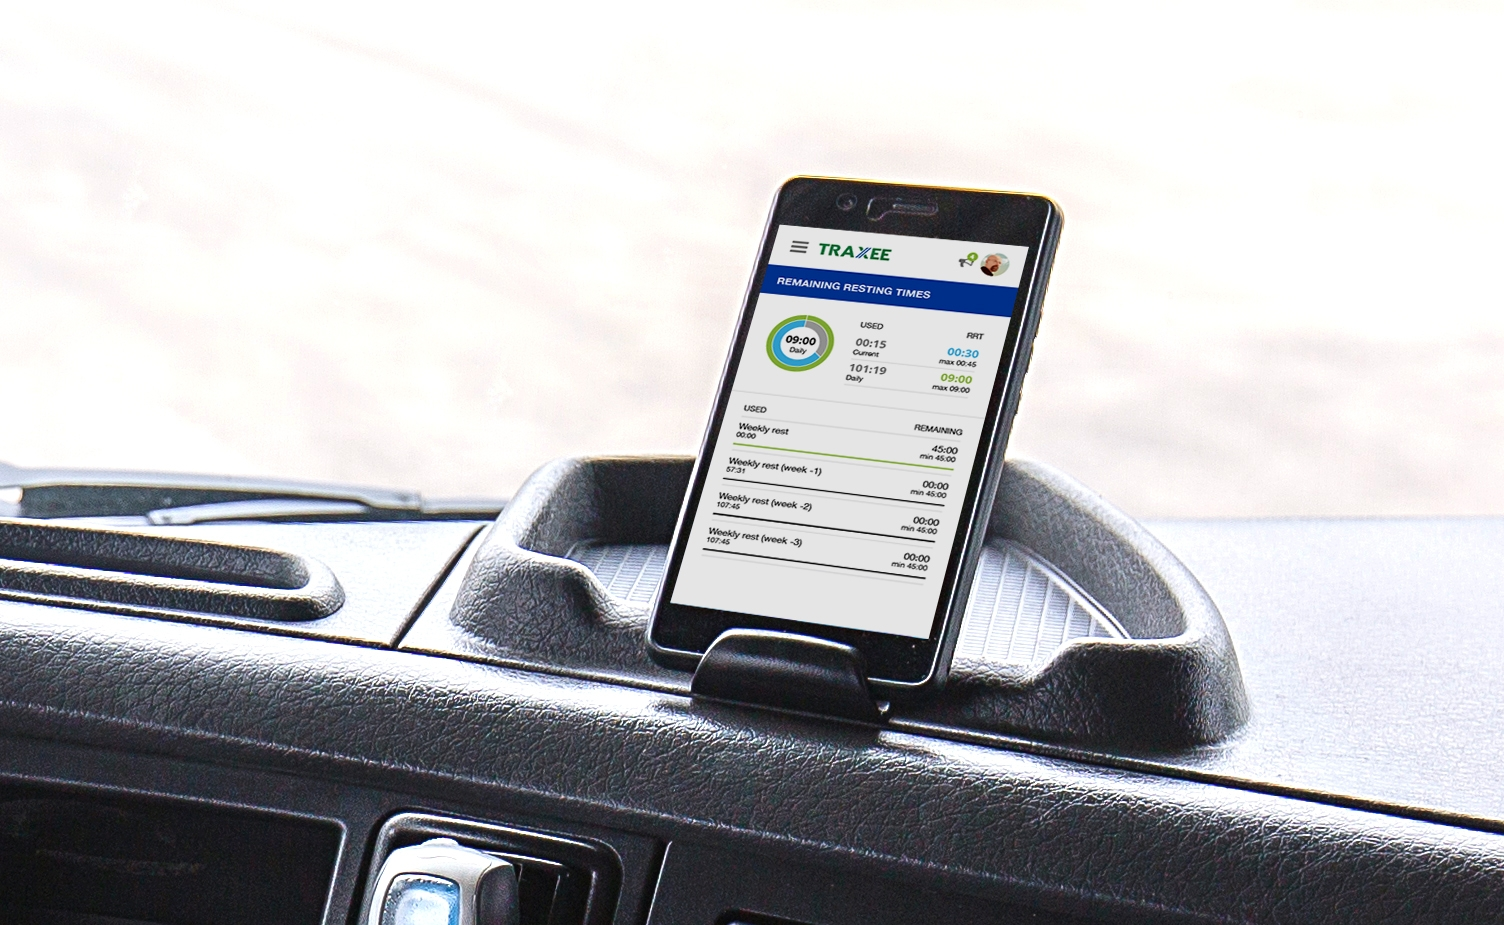 WABCO Launches TRAXEE Fleet Management System for Small to Medium Commercial Fleets